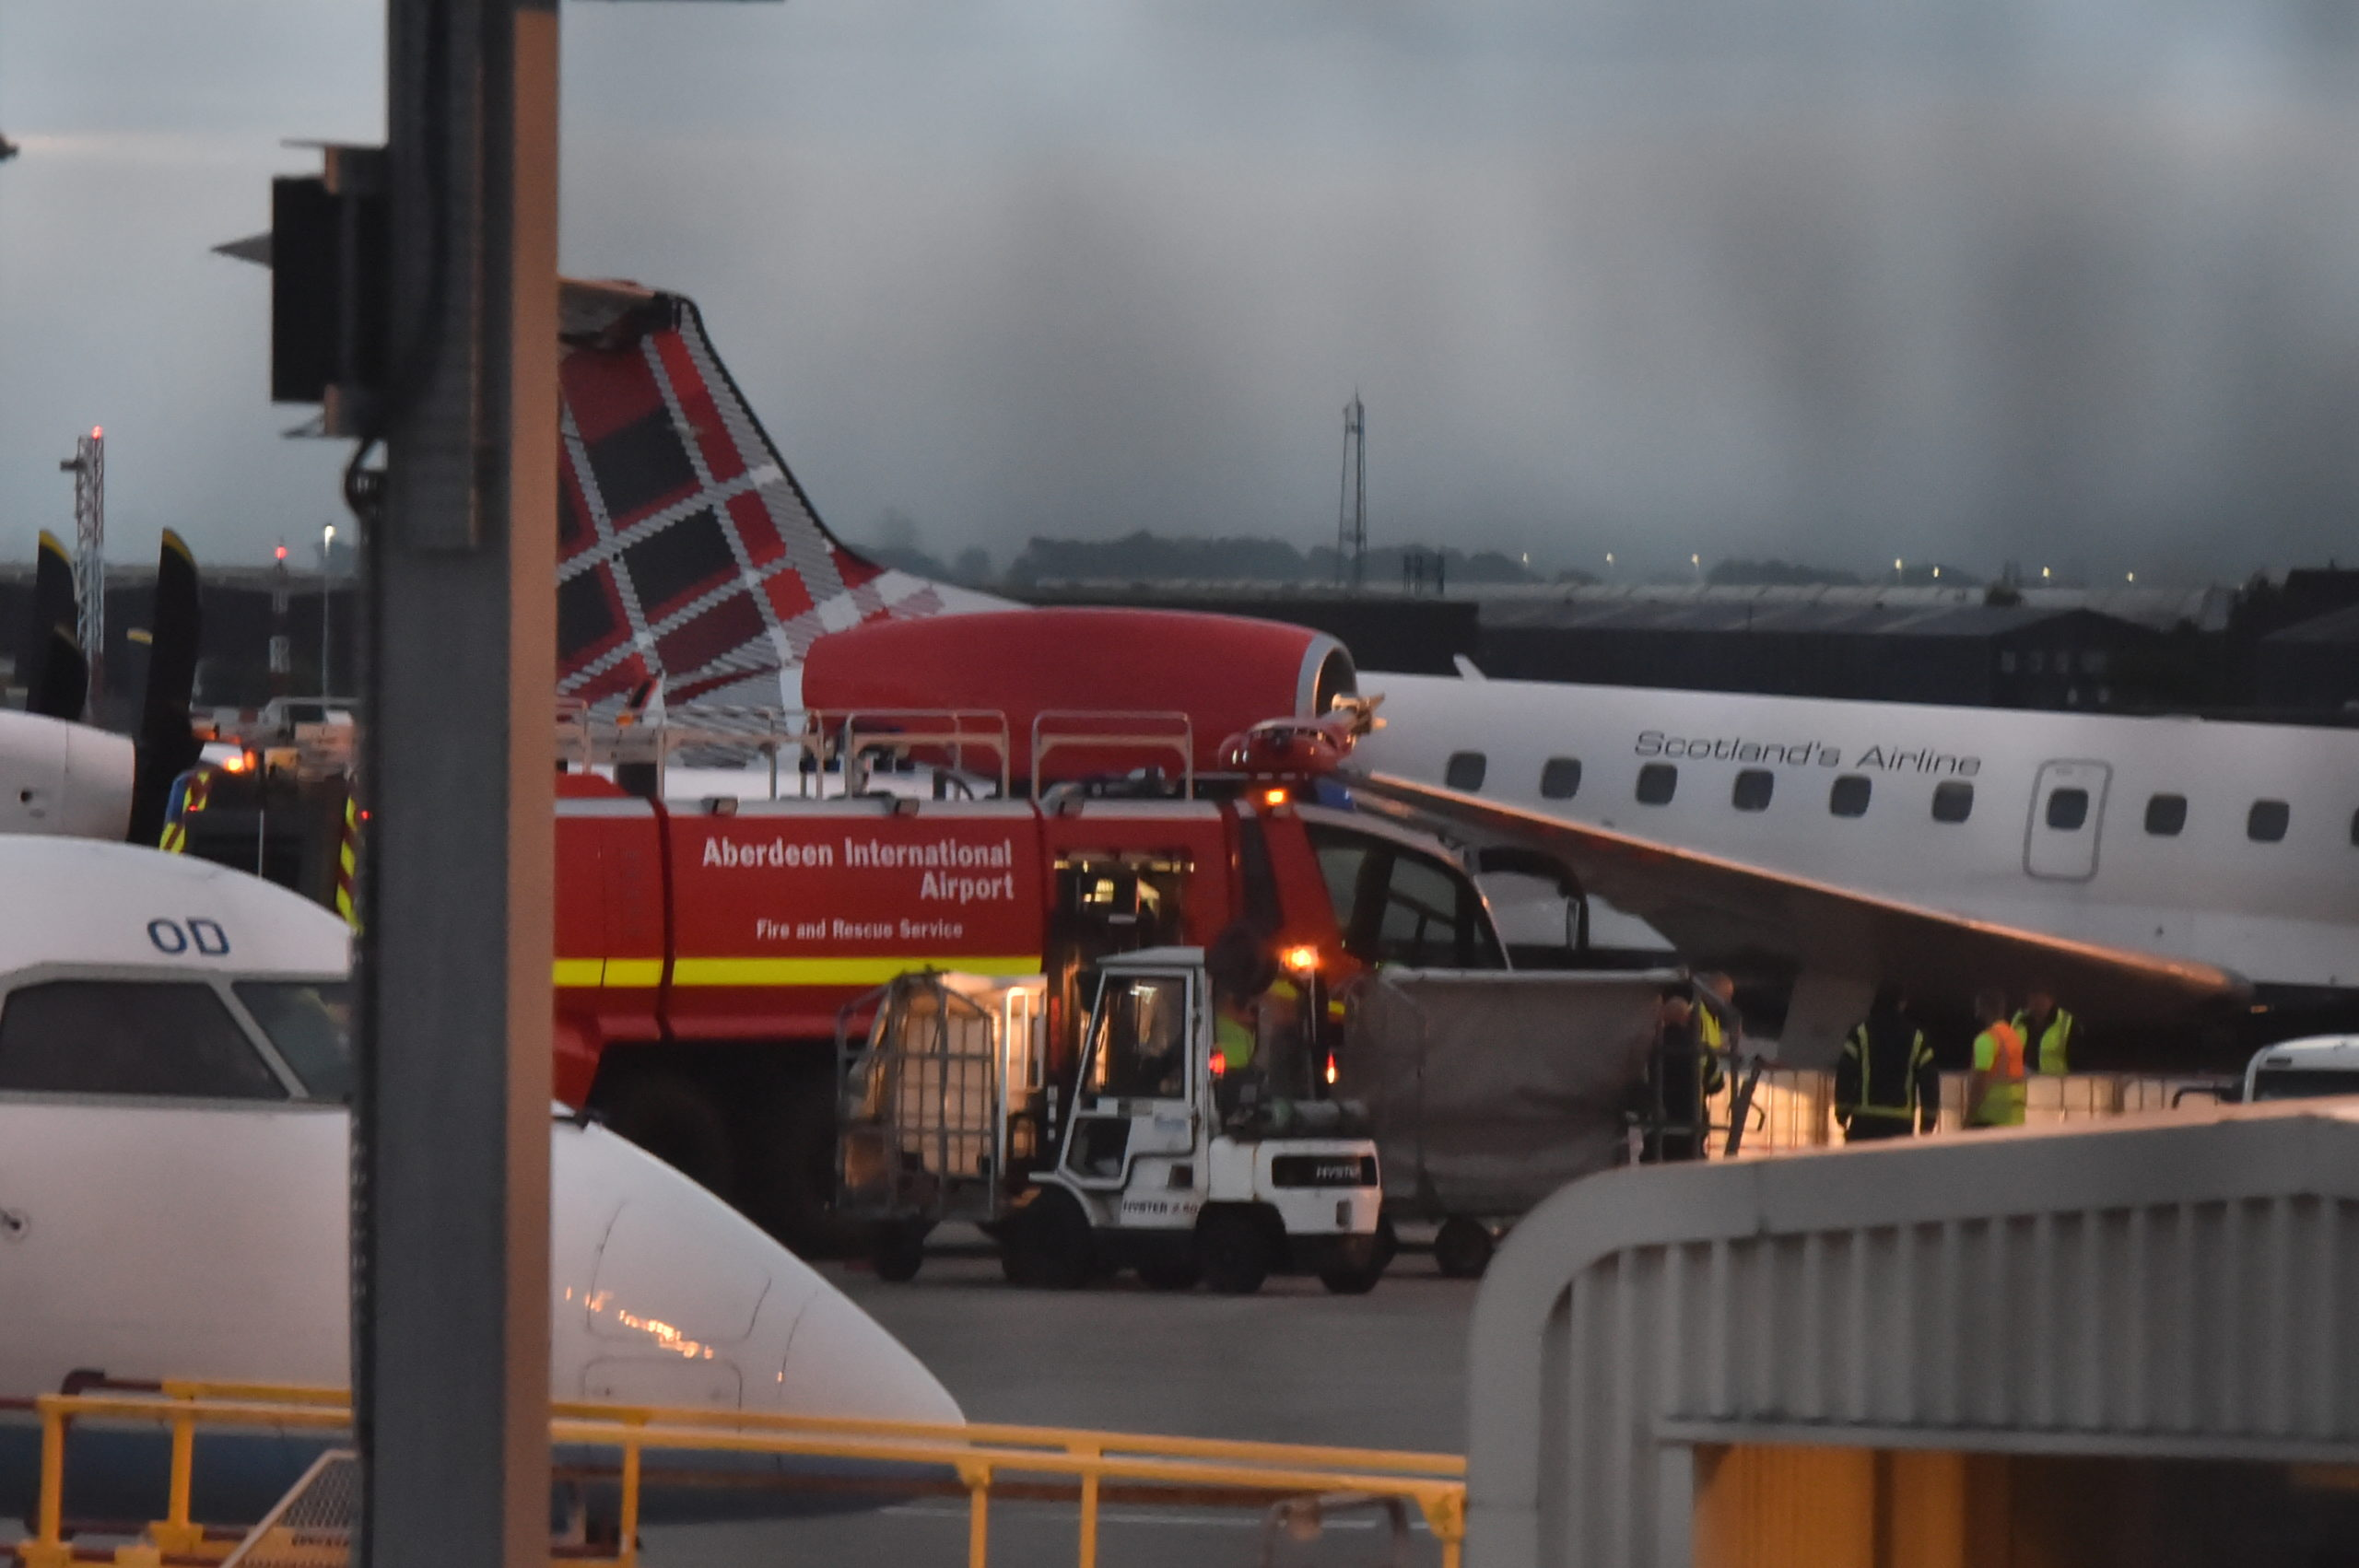 Aberdeen International Airport Fire and Rescue crews in attendance at the scene.